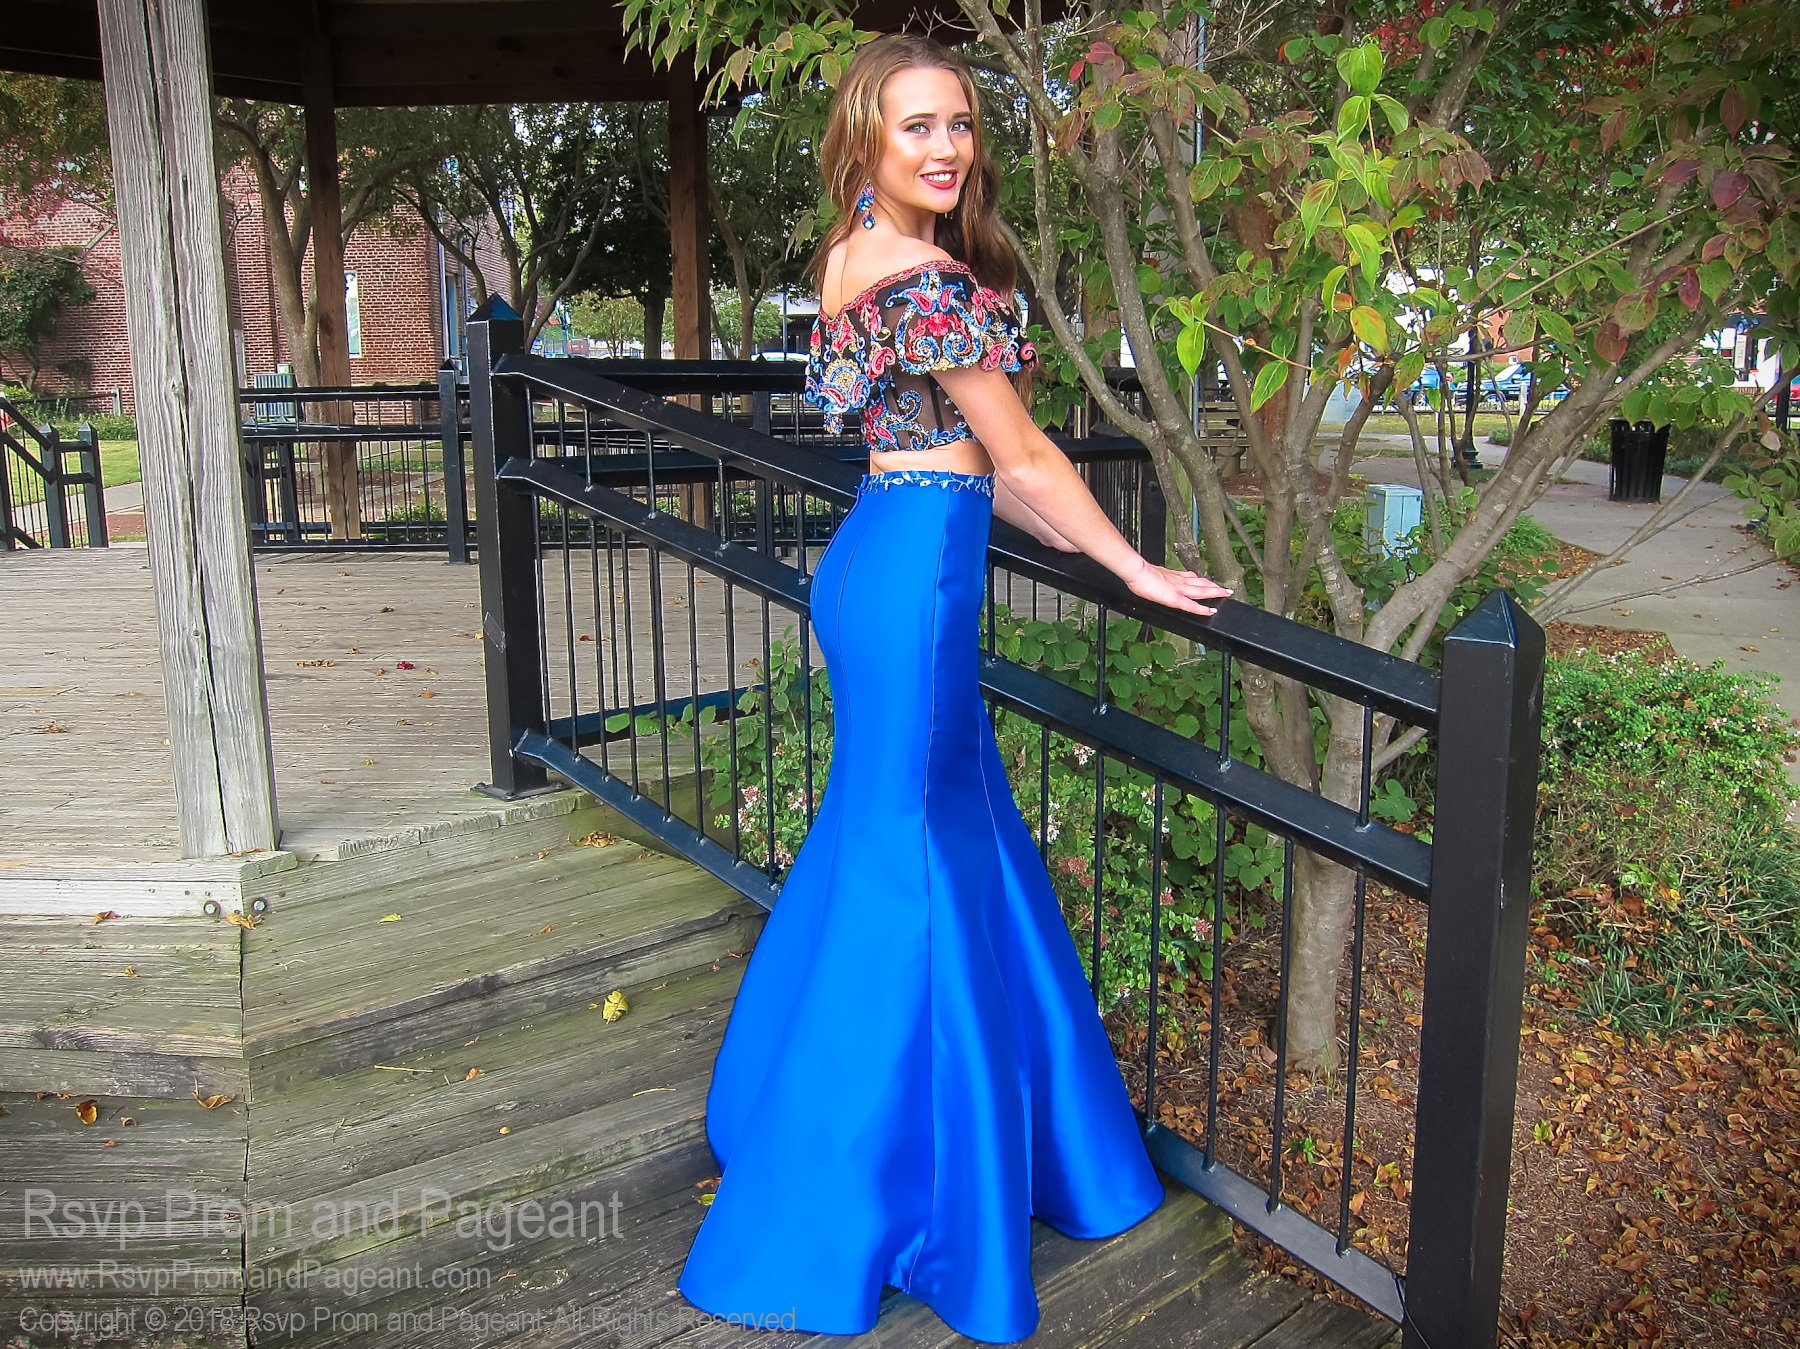 Royal Multi Bohemian Off The Shoulder Two Piece Mermaid Prom Dress Mermaid Prom Dresses Royal Blue Prom Dresses Pageant Dresses [ 1349 x 1800 Pixel ]